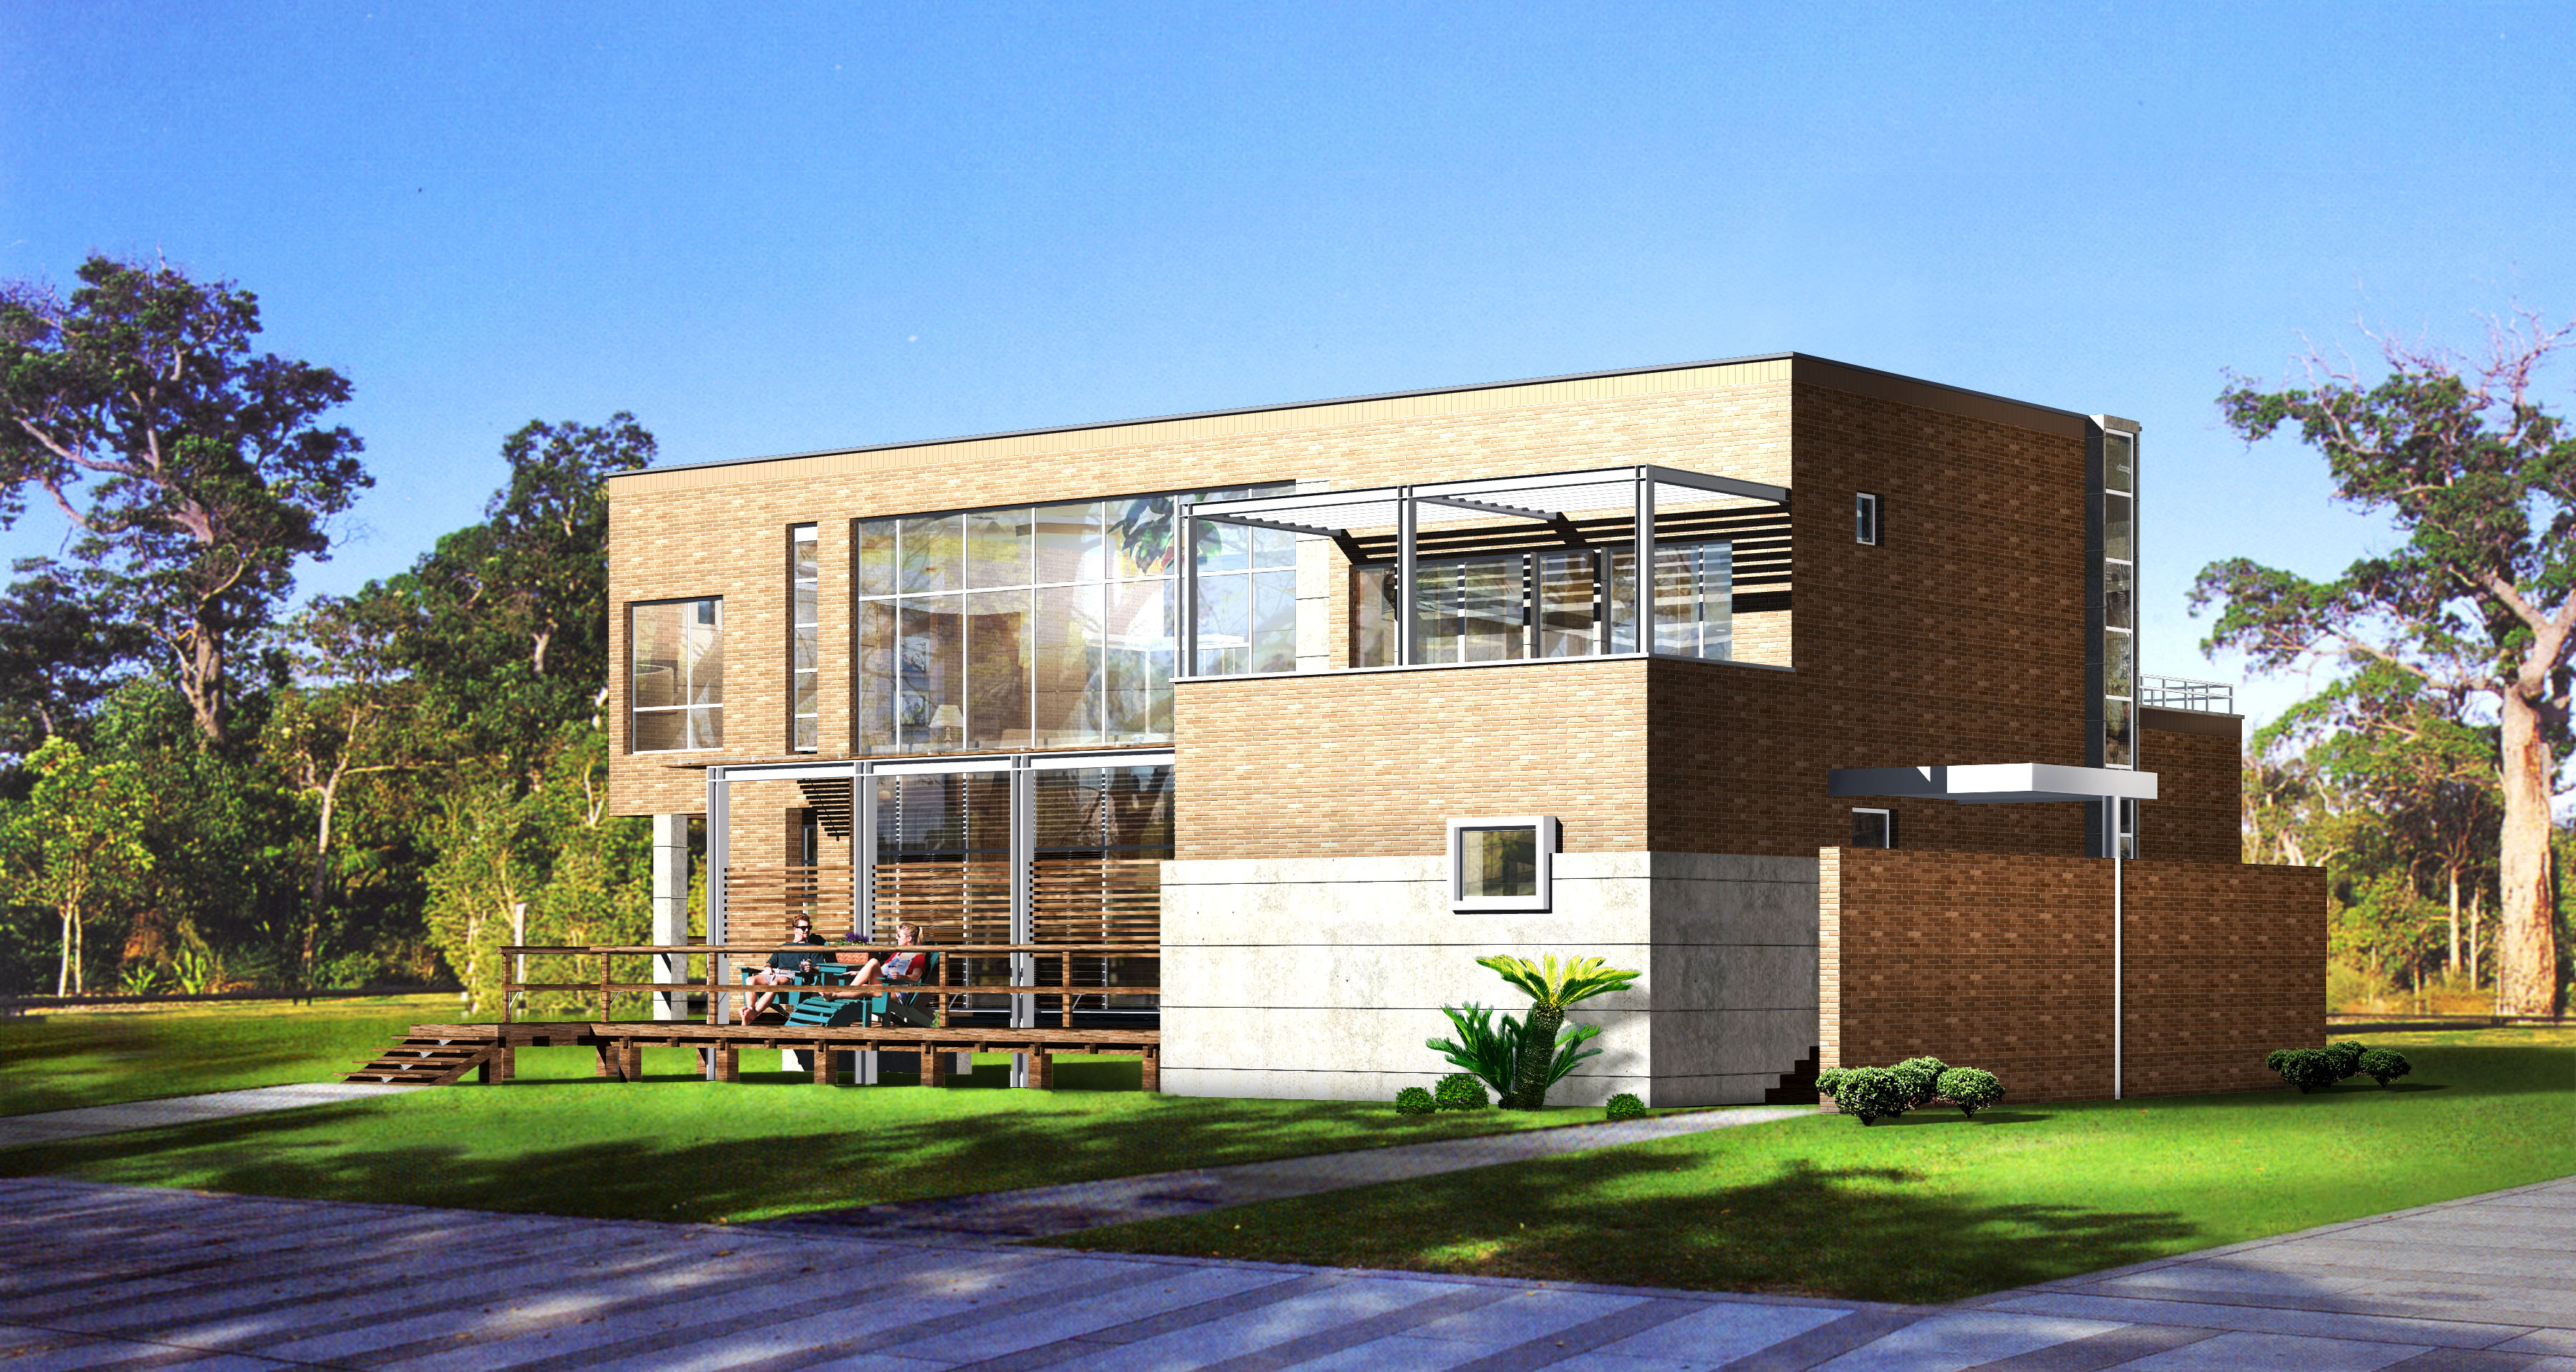 building in modern style 011 3d model max psd 122900